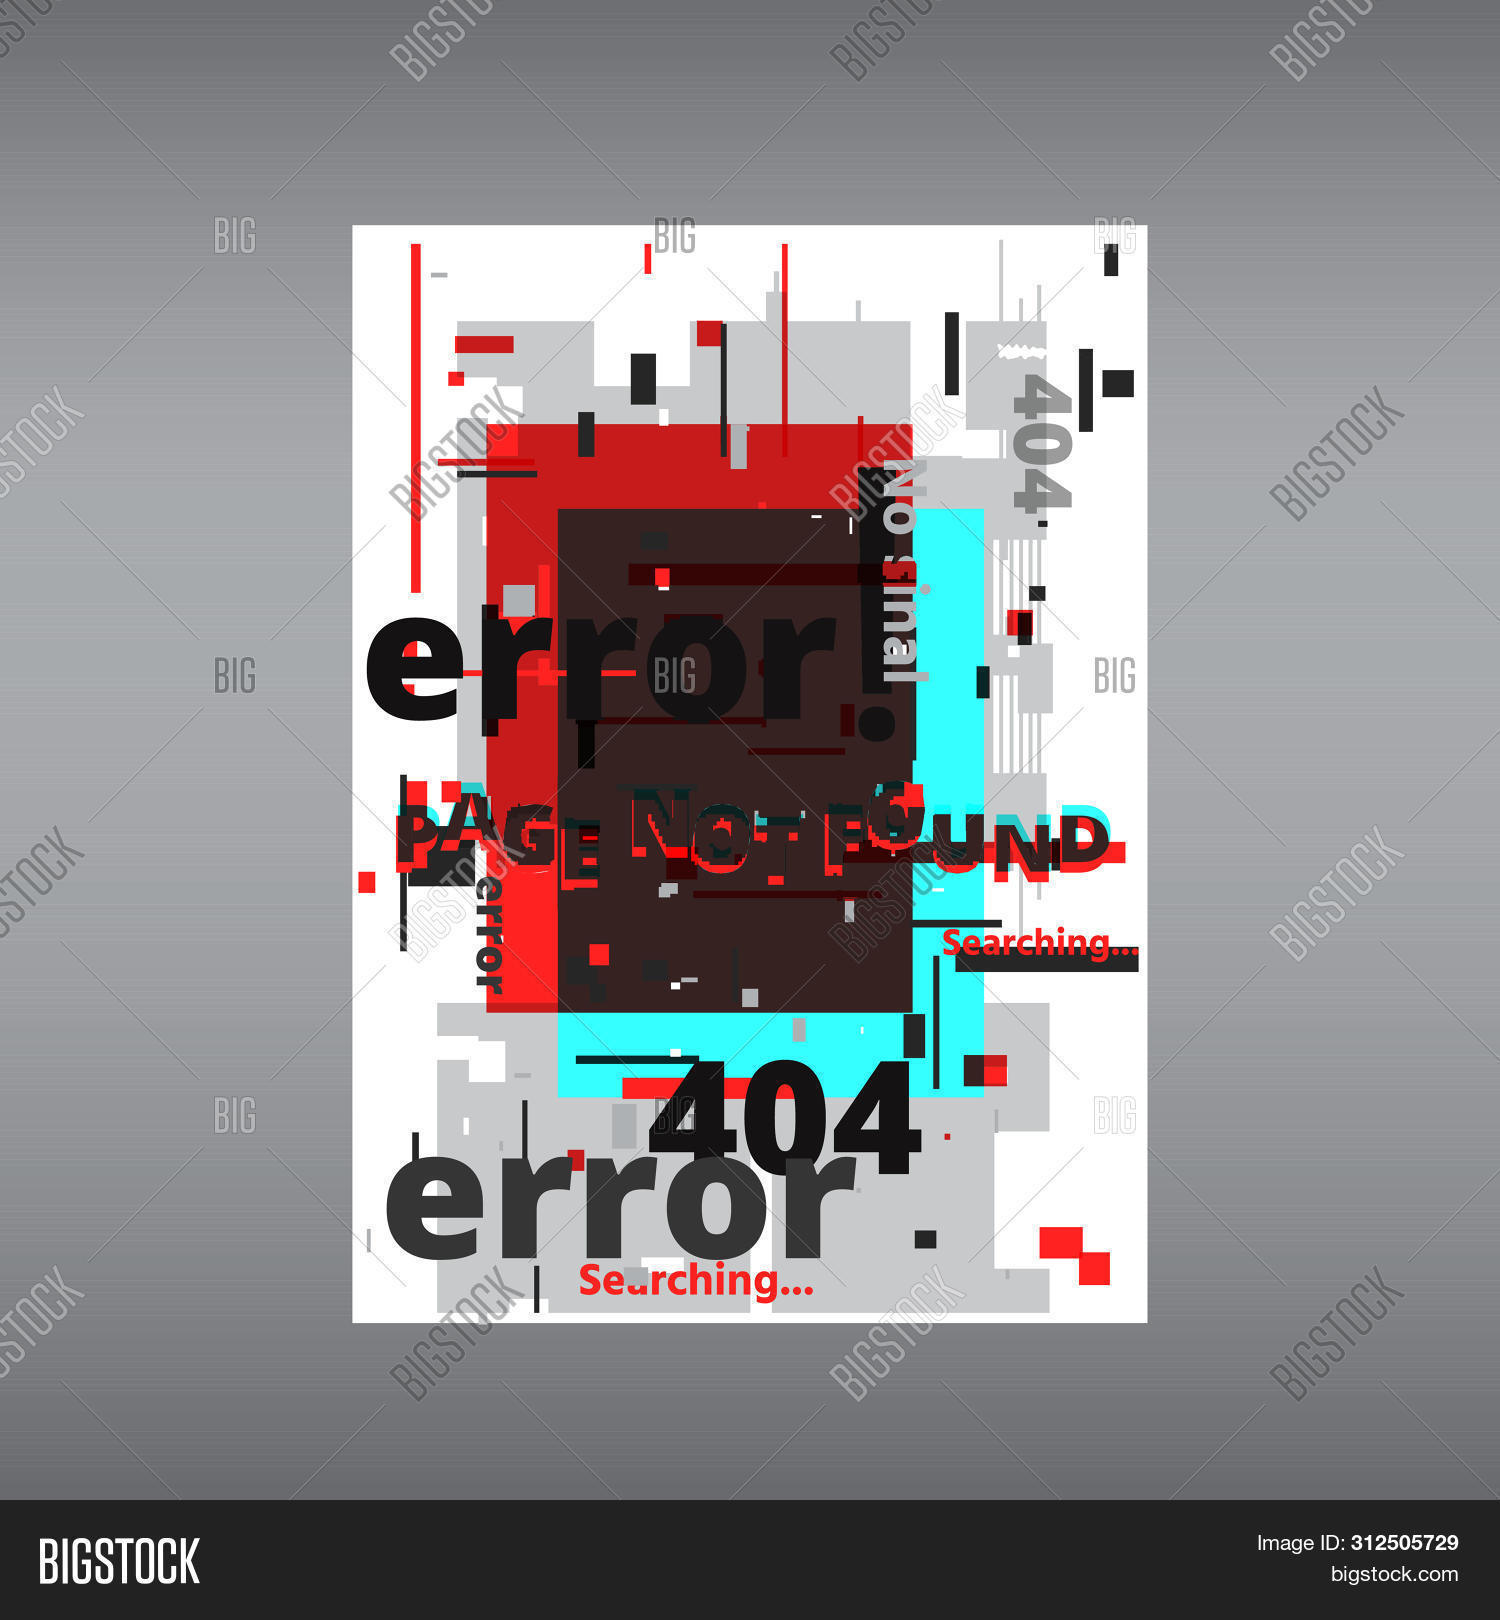 404,abstract,alphabet,backdrop,background,banner,black,blue,bug,card,color,concept,digital,display,distorted,distortion,effect,element,error,flyer,found,frame,futuristic,geometric,glitch,glitched,graphic,illustration,line,minimal,modern,no,noise,not,page,pause,pixel,poster,retro,screen,sign,signal,symbol,system,technology,trendy,tv,type,vector,website